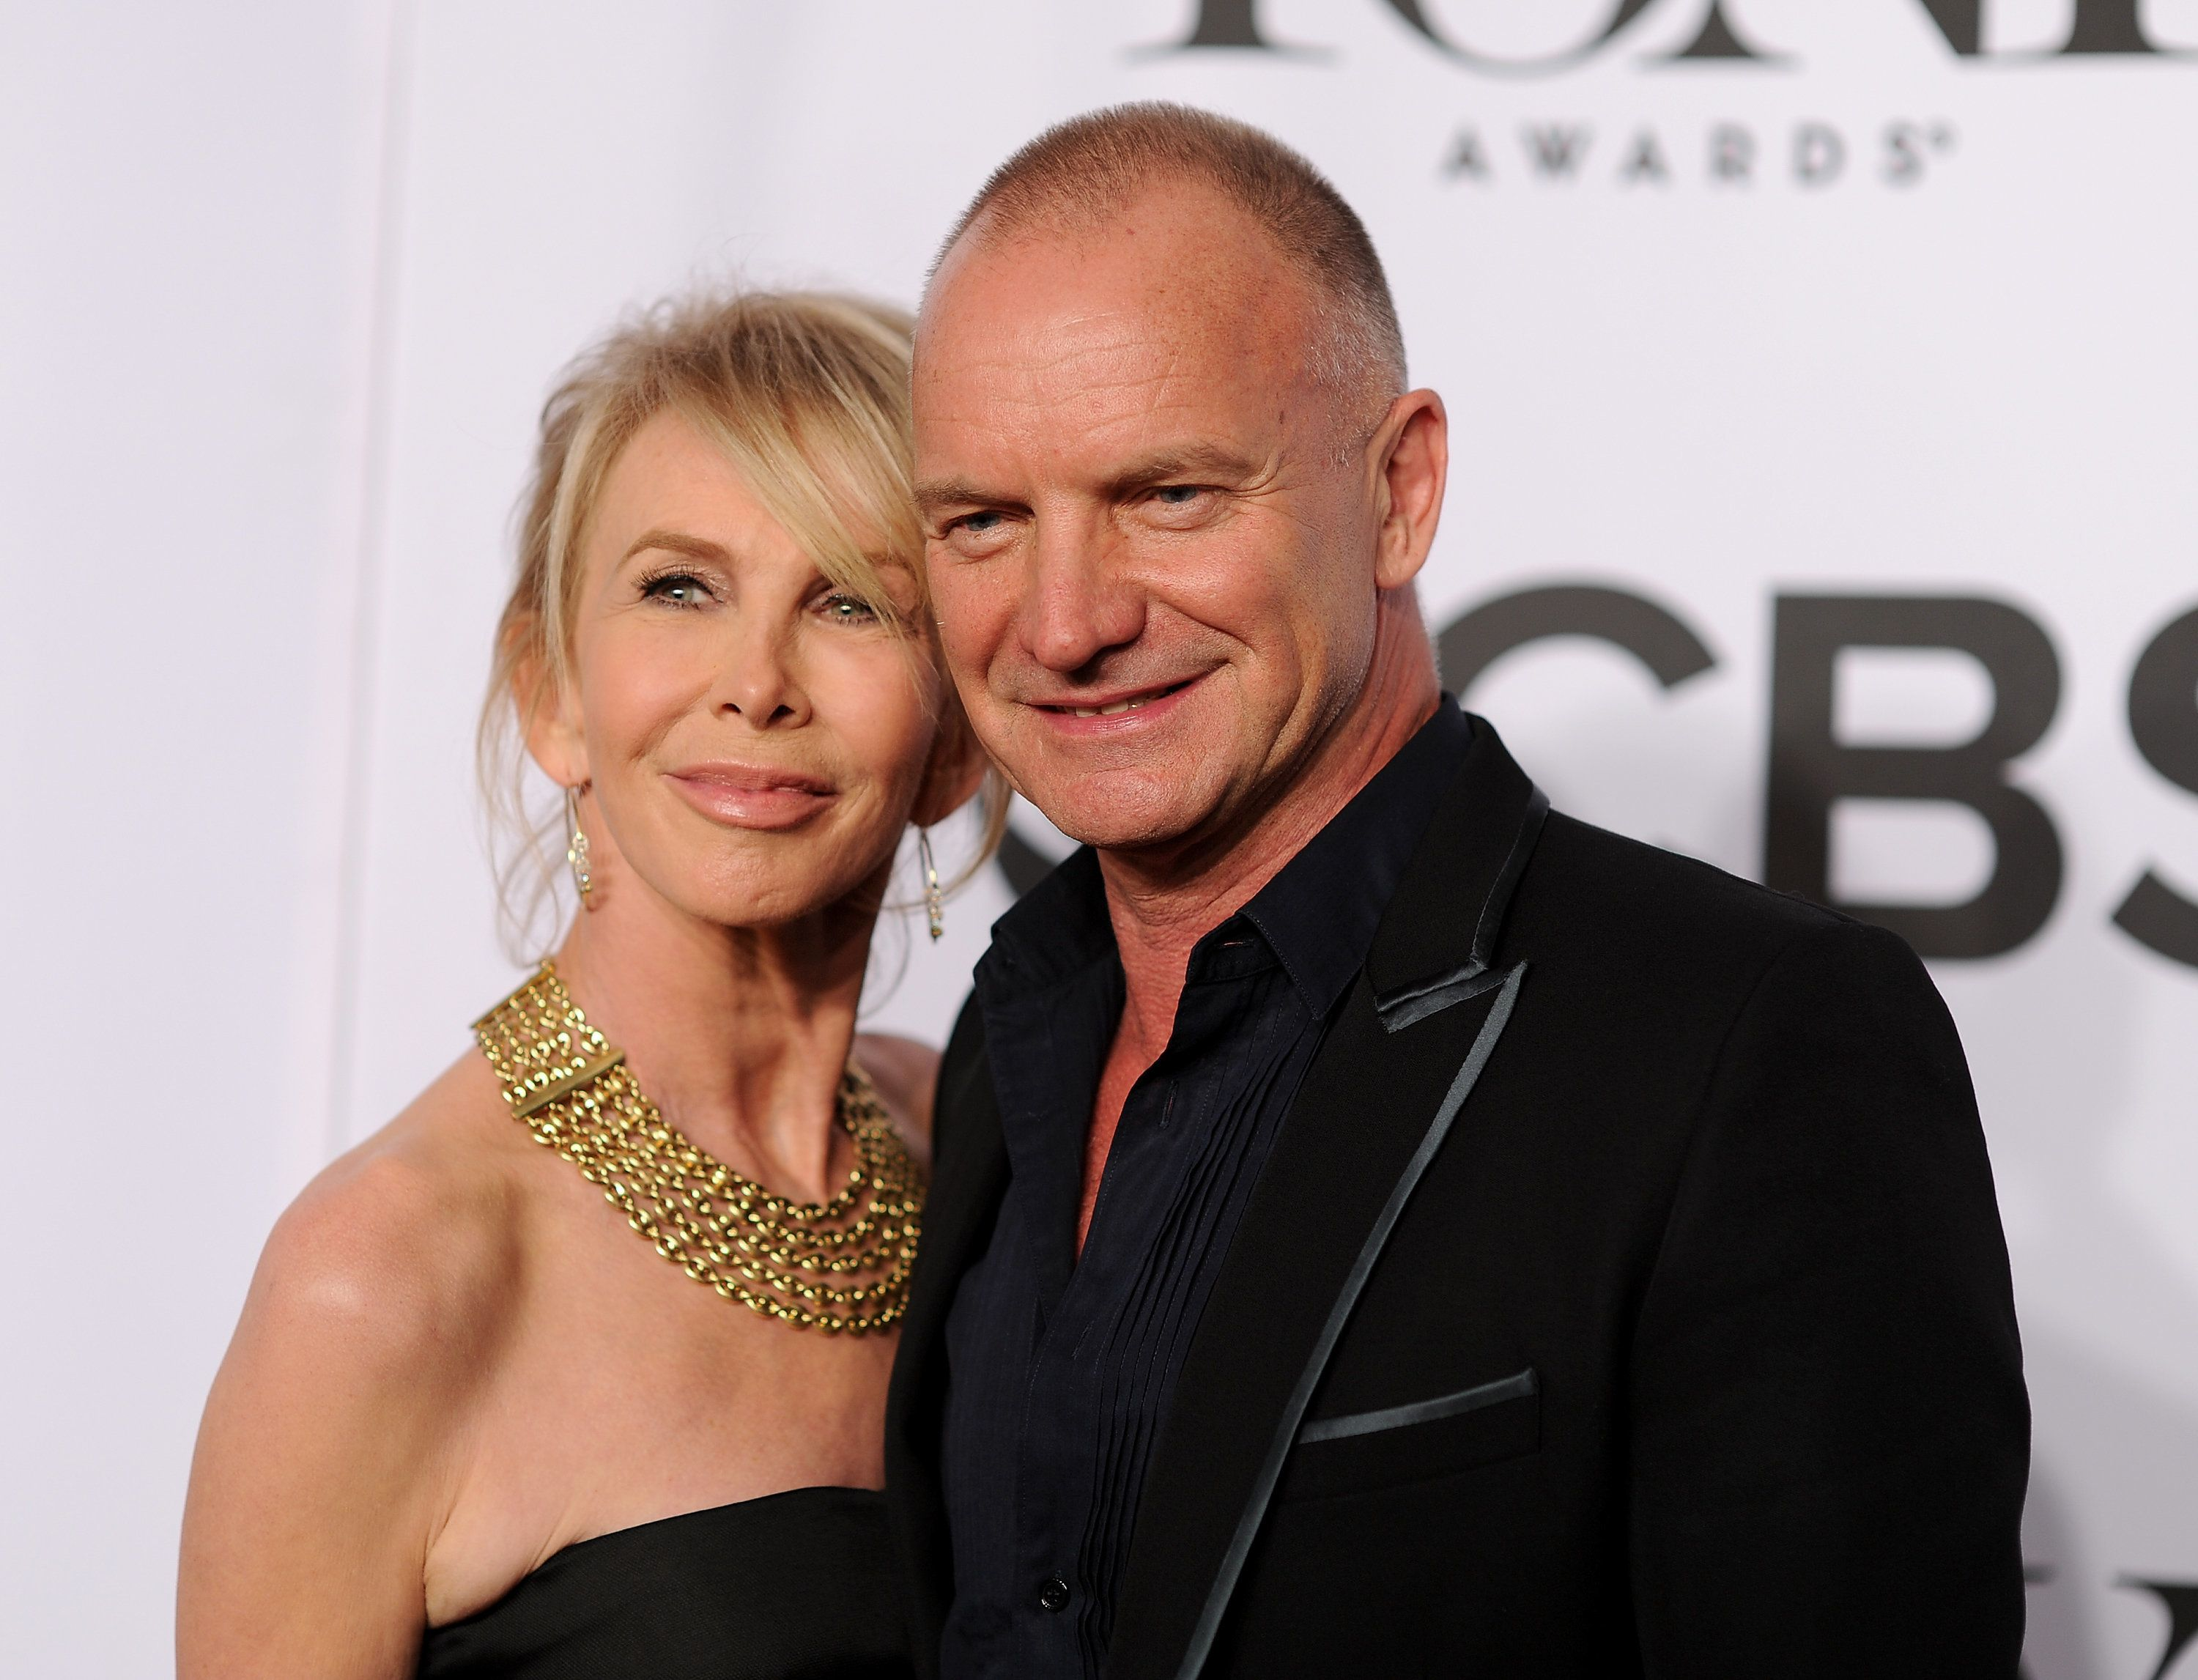 Sting And His Wife Are Still In The Honeymoon Phase 24